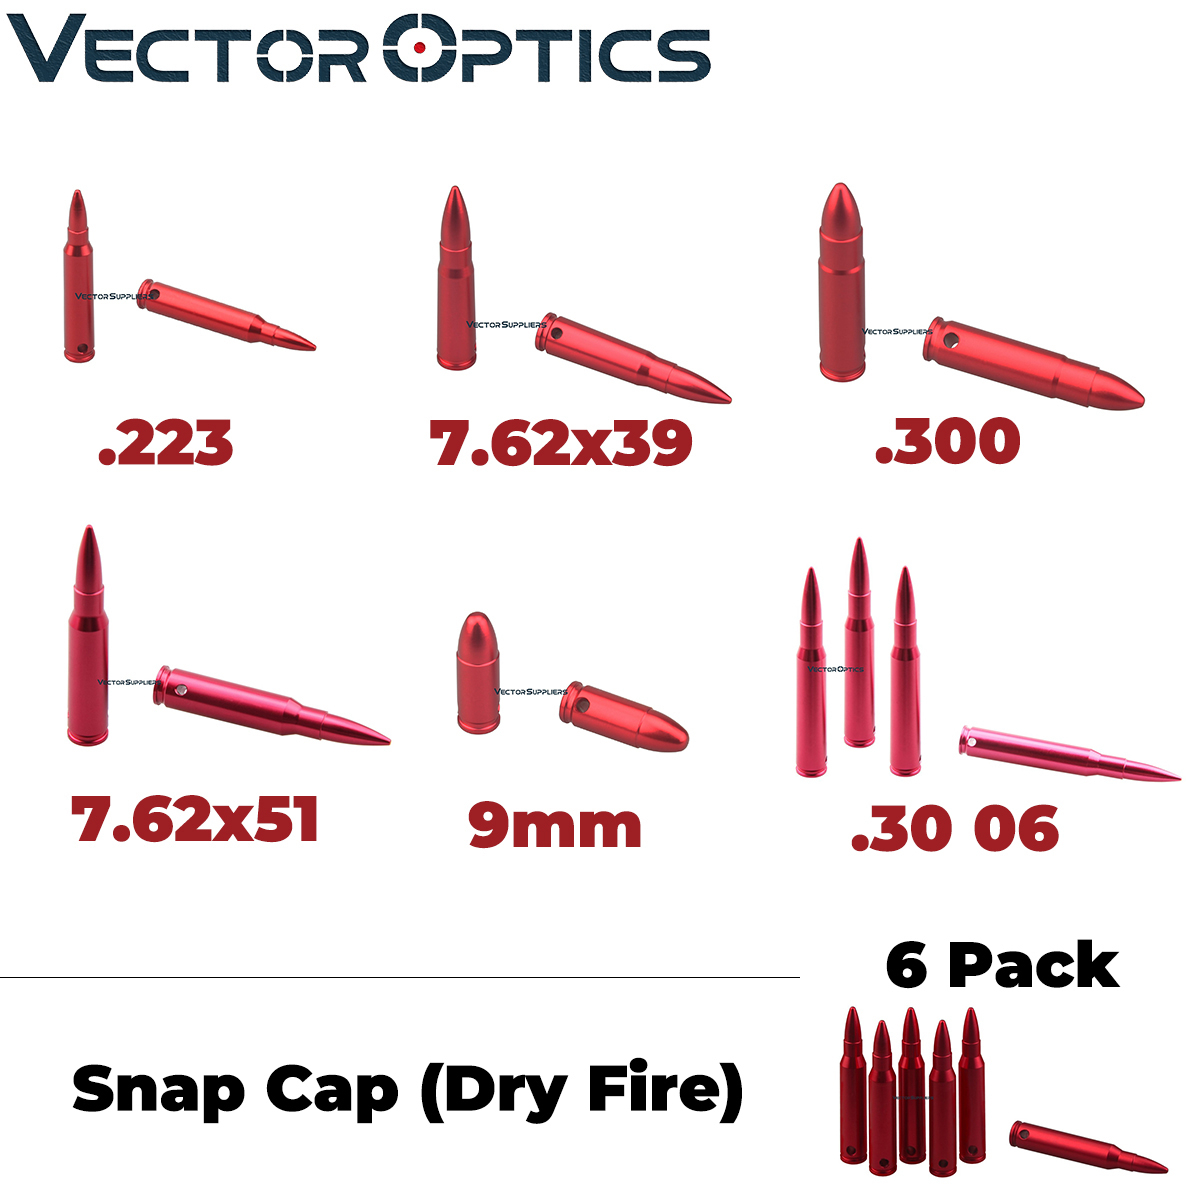 Vector Optics 6 Pack Snap Caps Dry Fire Rifle Pistol Calibers Safty Traning Round 7.62x39mm .223 Remington .300 .30 06  .308 9mm